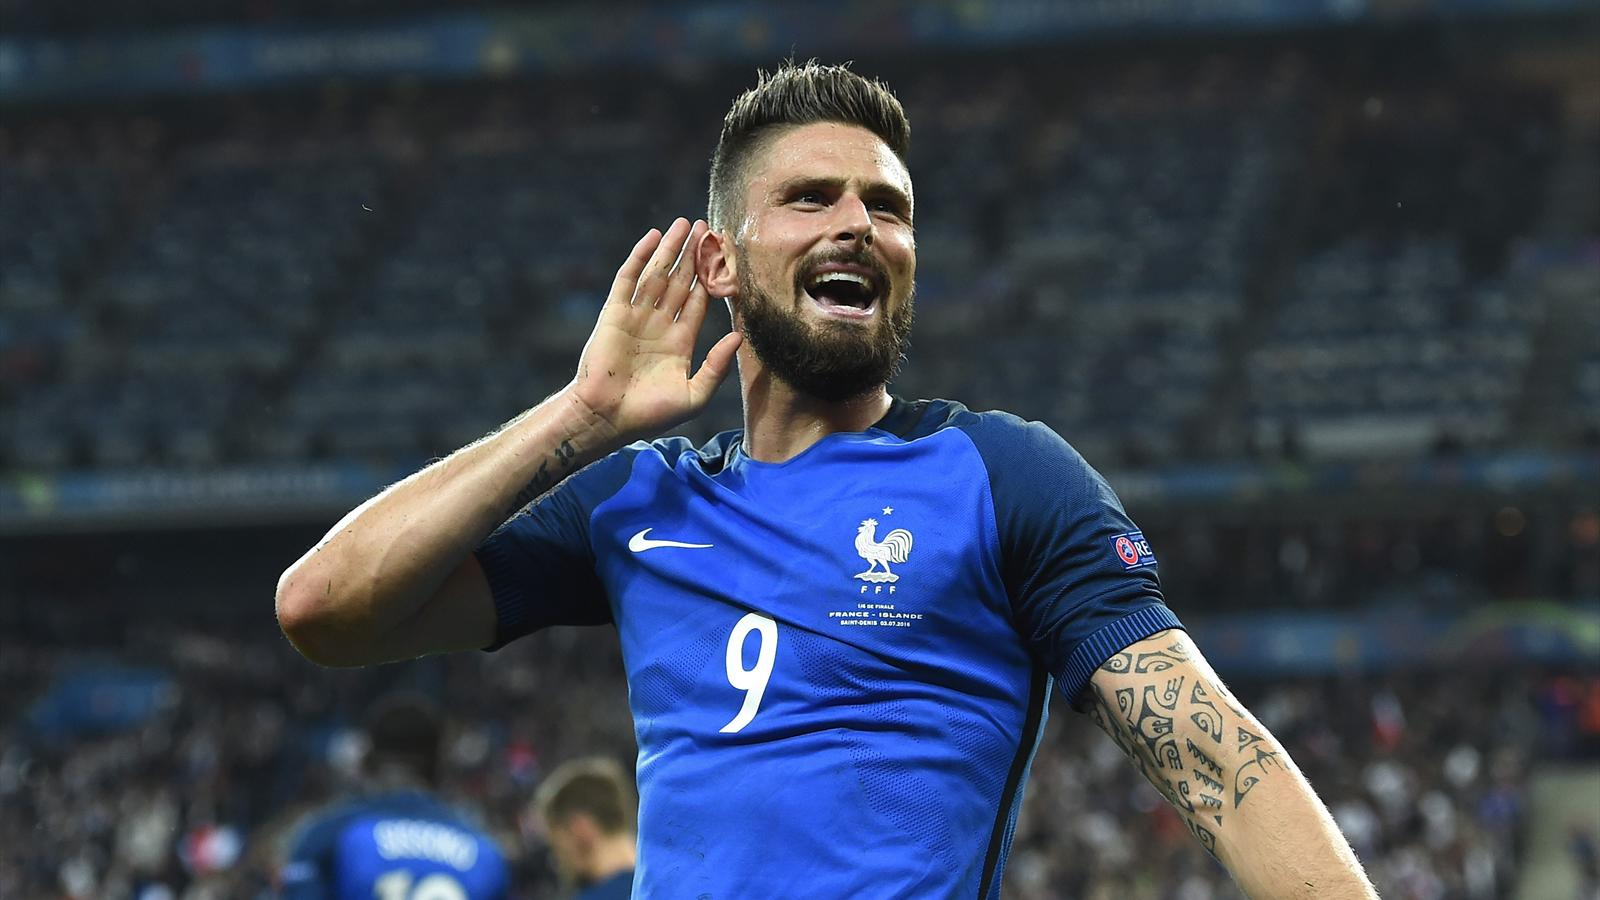 Equipe de france la double vie de giroud qualif coupe du monde uefa 2018 football - Resultat match coupe de france ...